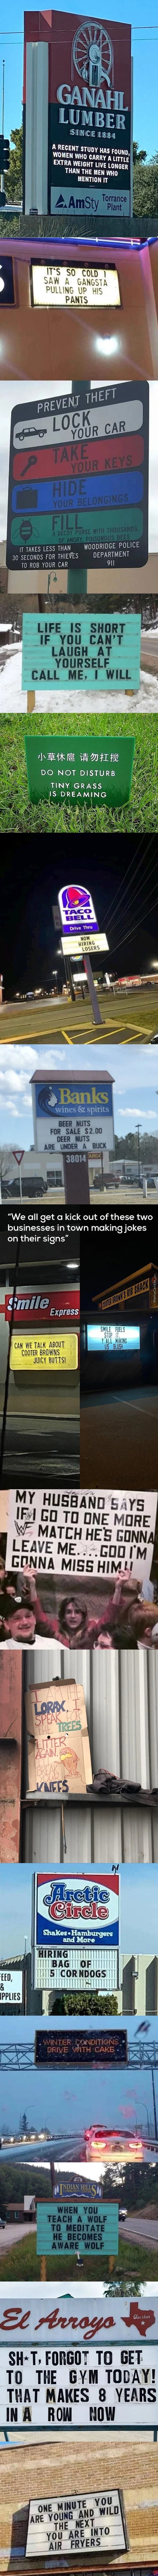 Just A Compilation Of Signs #16